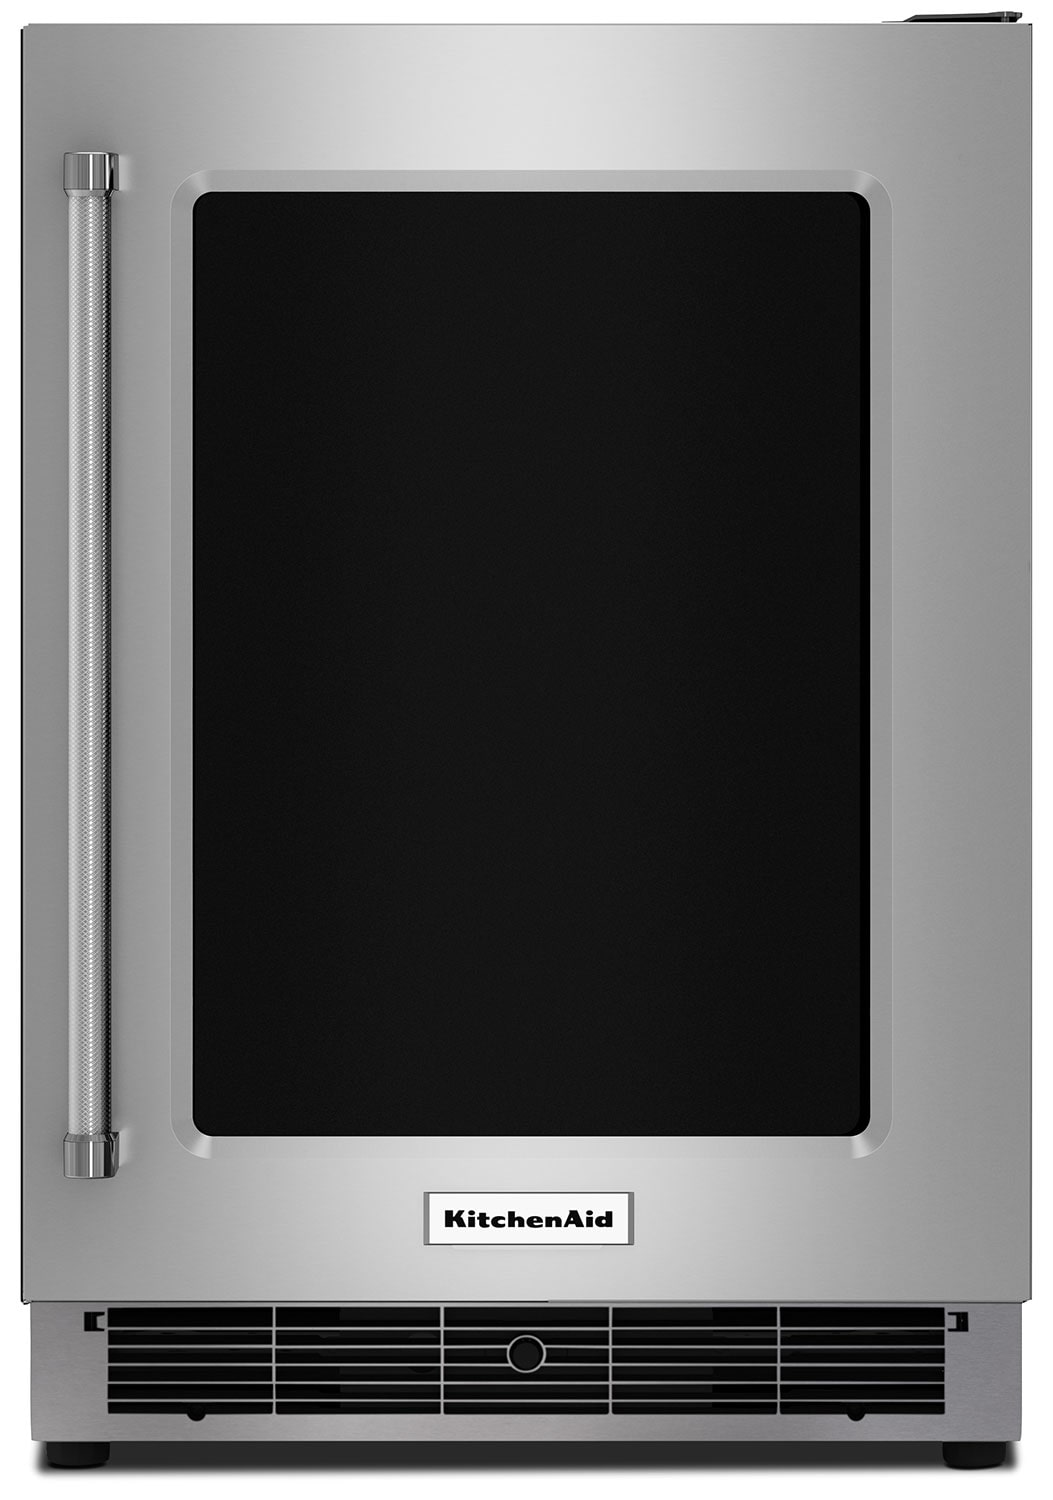 KitchenAid 5.1 Cu. Ft. Undercounter Refrigerator with Right-Door Swing – KURR304ESS